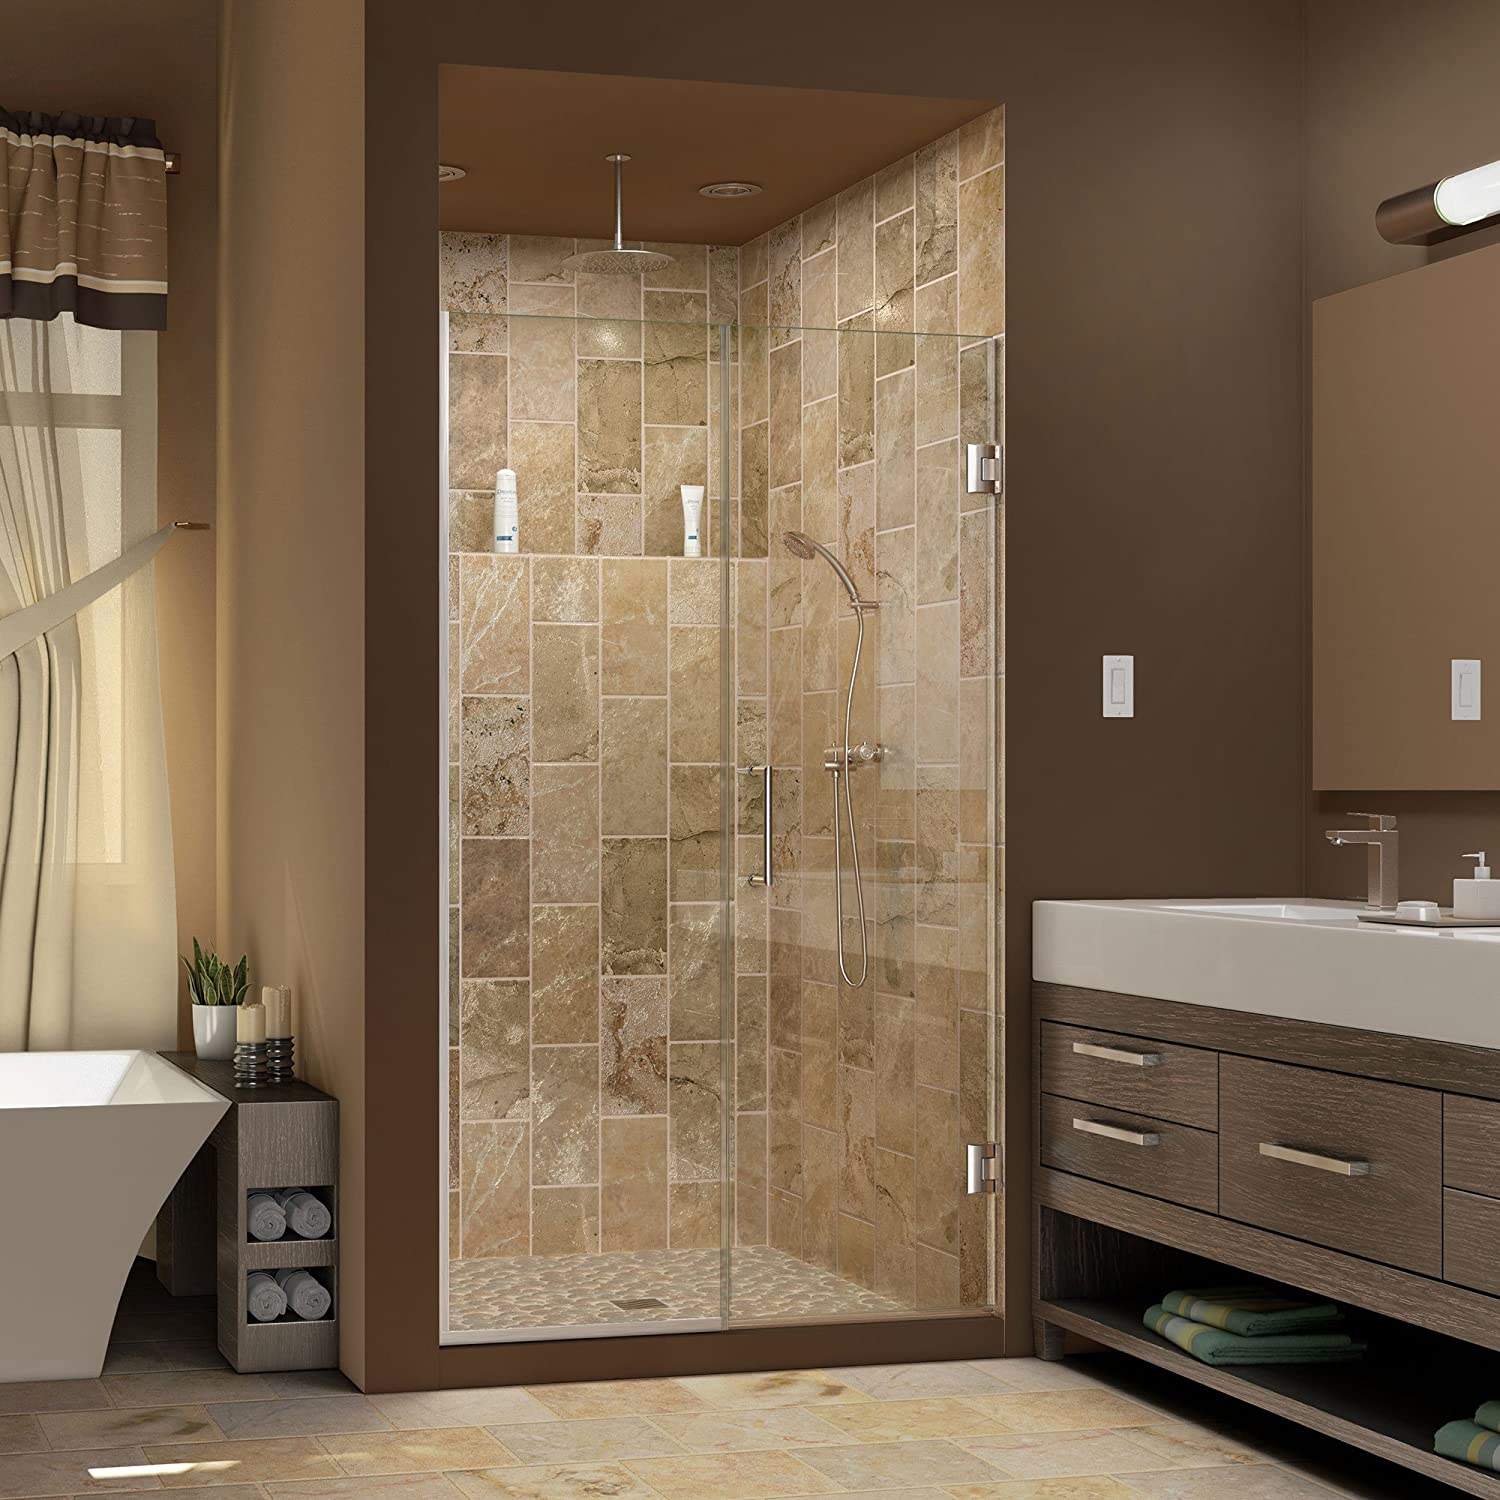 DreamLine Unidoor Plus 57 1/2-58 in. Width, Frameless Hinged Shower ...